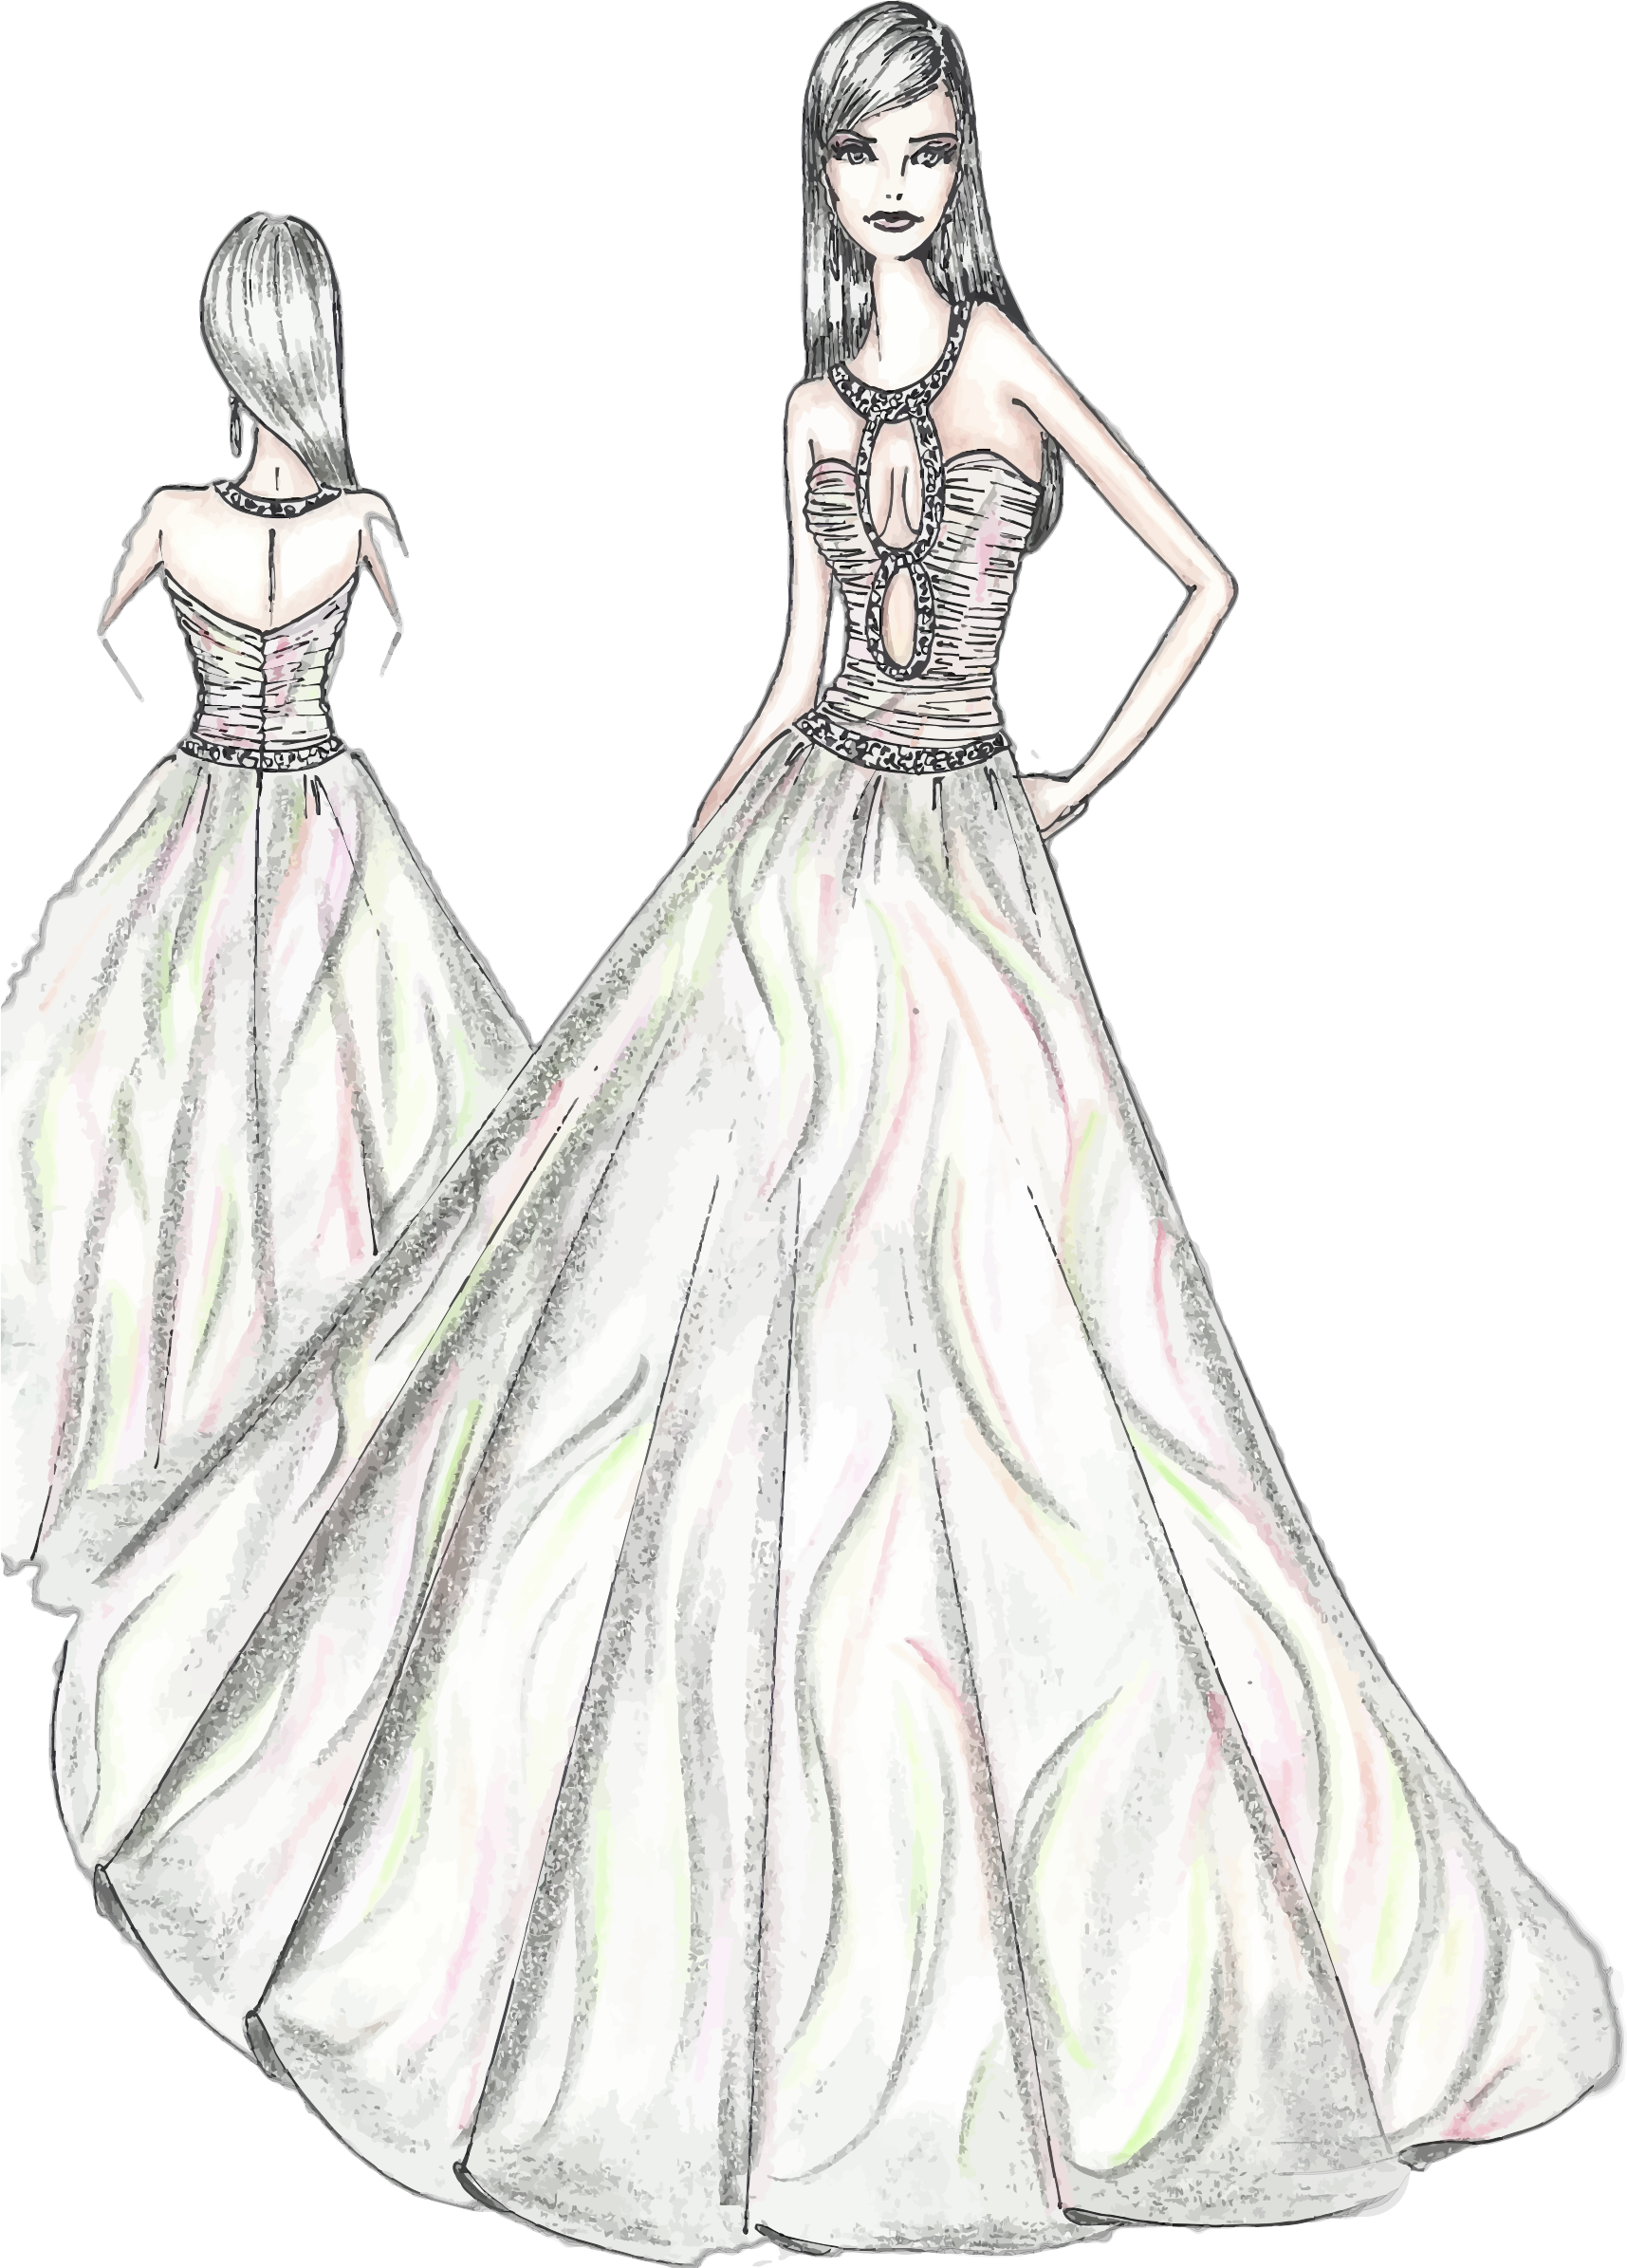 Fashionista drawing designer